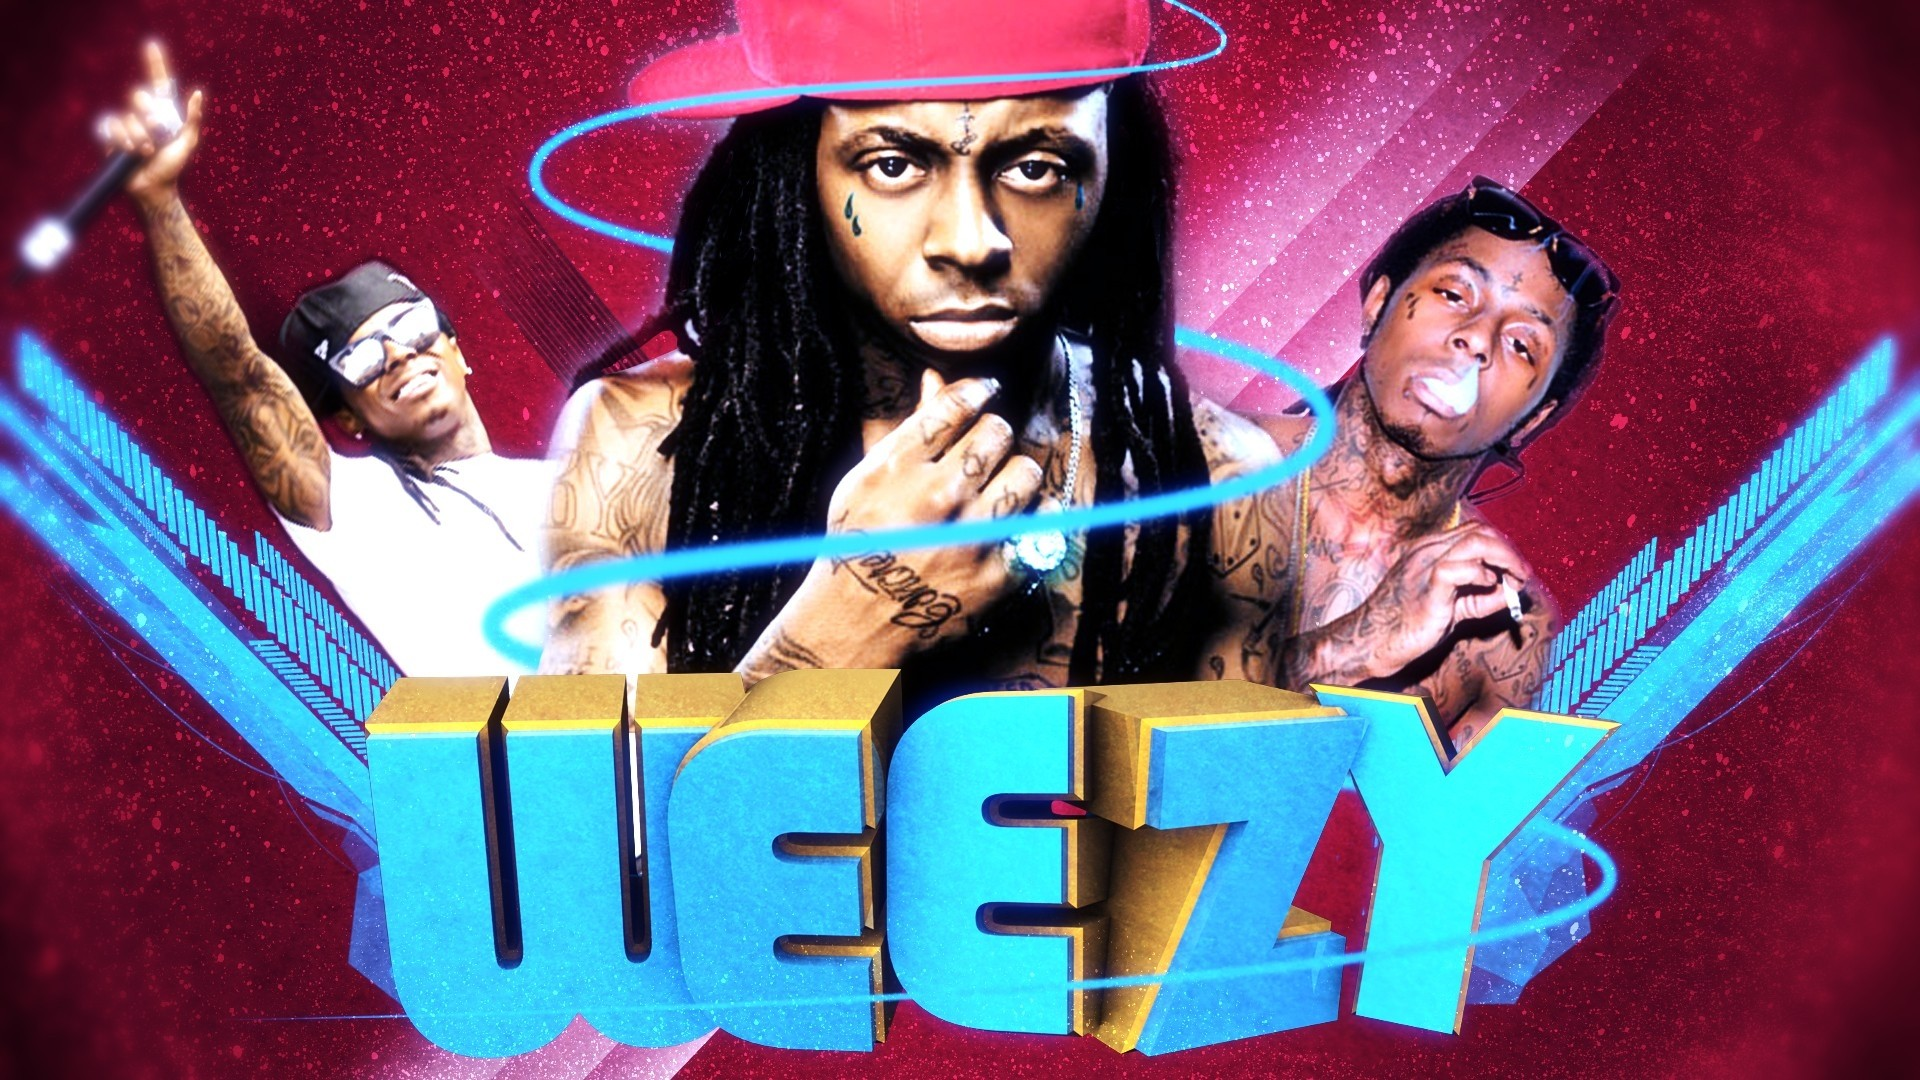 1920x1080 wallpaper: Lil Wayne Hd Wallpapers 1366×768 Lil Wayne Backgrounds .